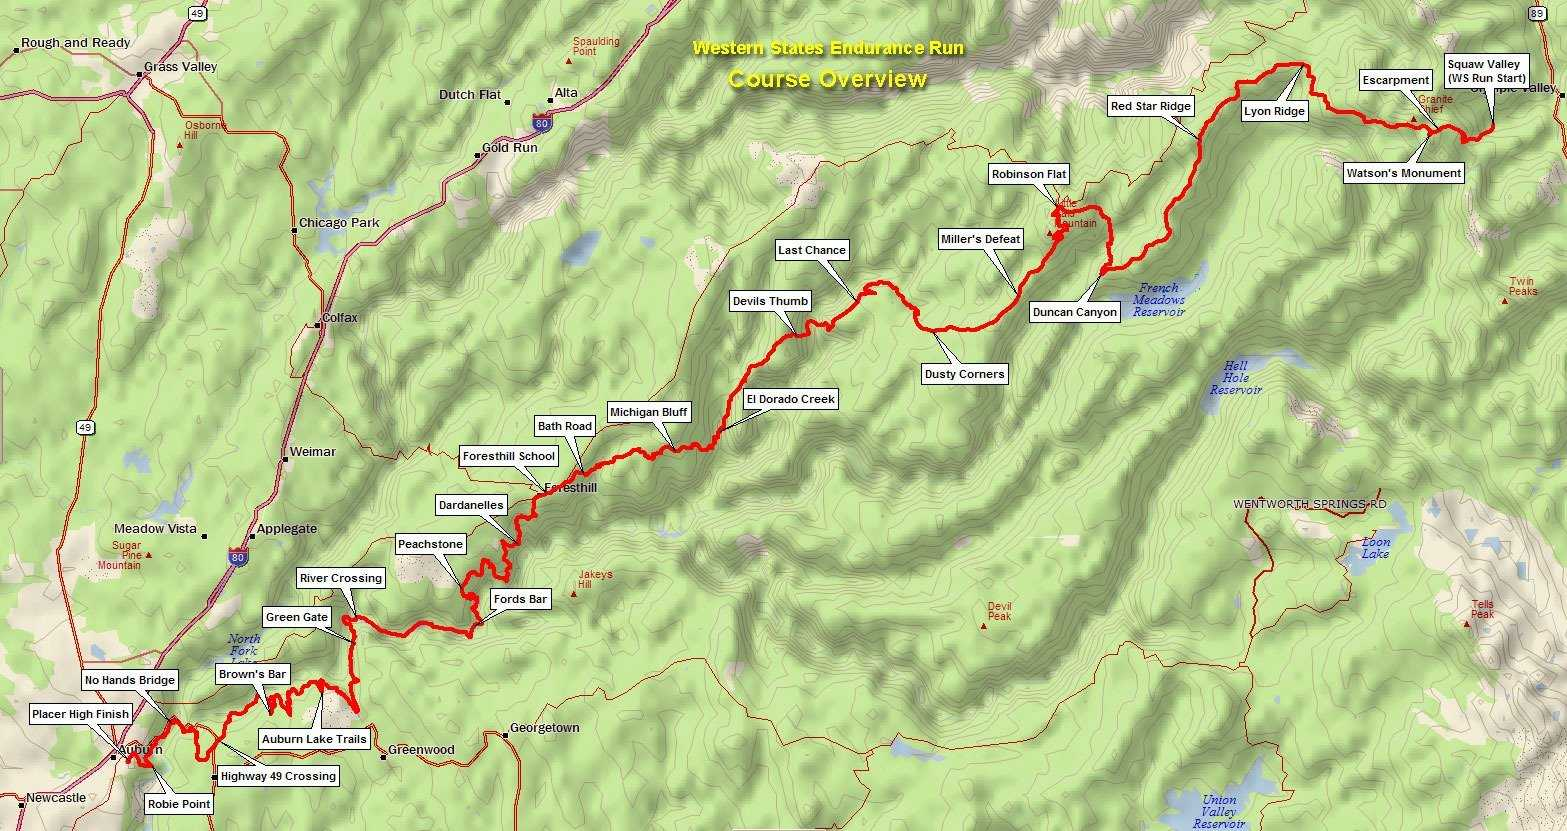 parcours western states